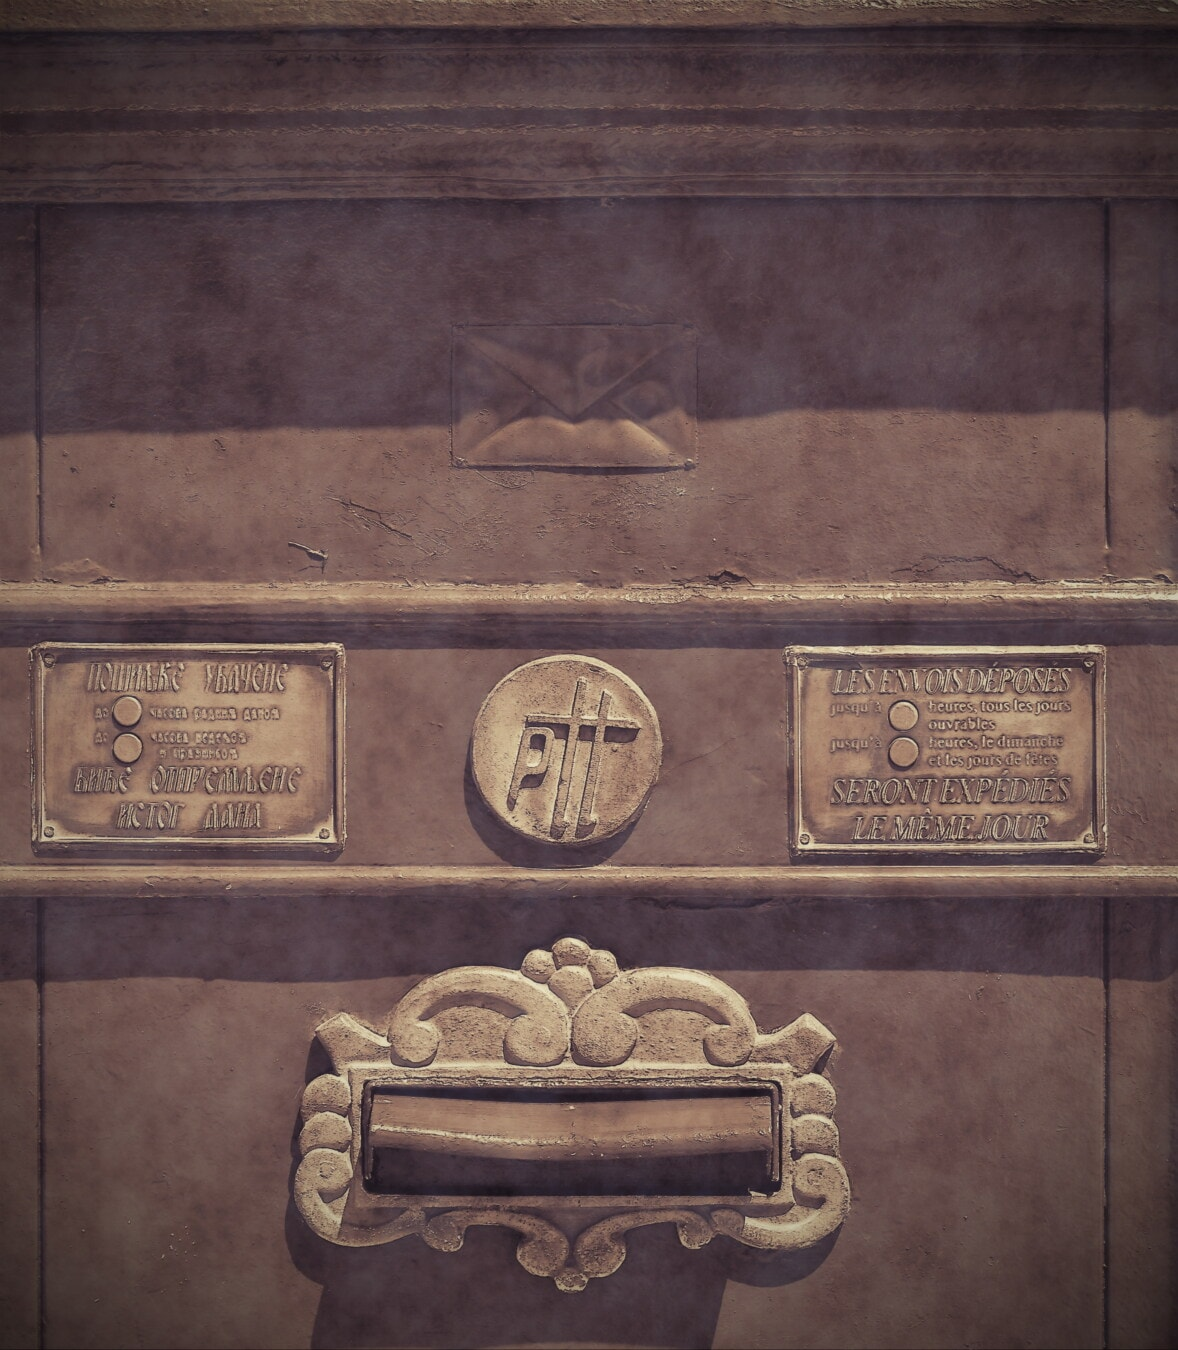 mail slot, mailbox, old fashioned, historic, monochrome, sepia, old style, old, sign, symbol